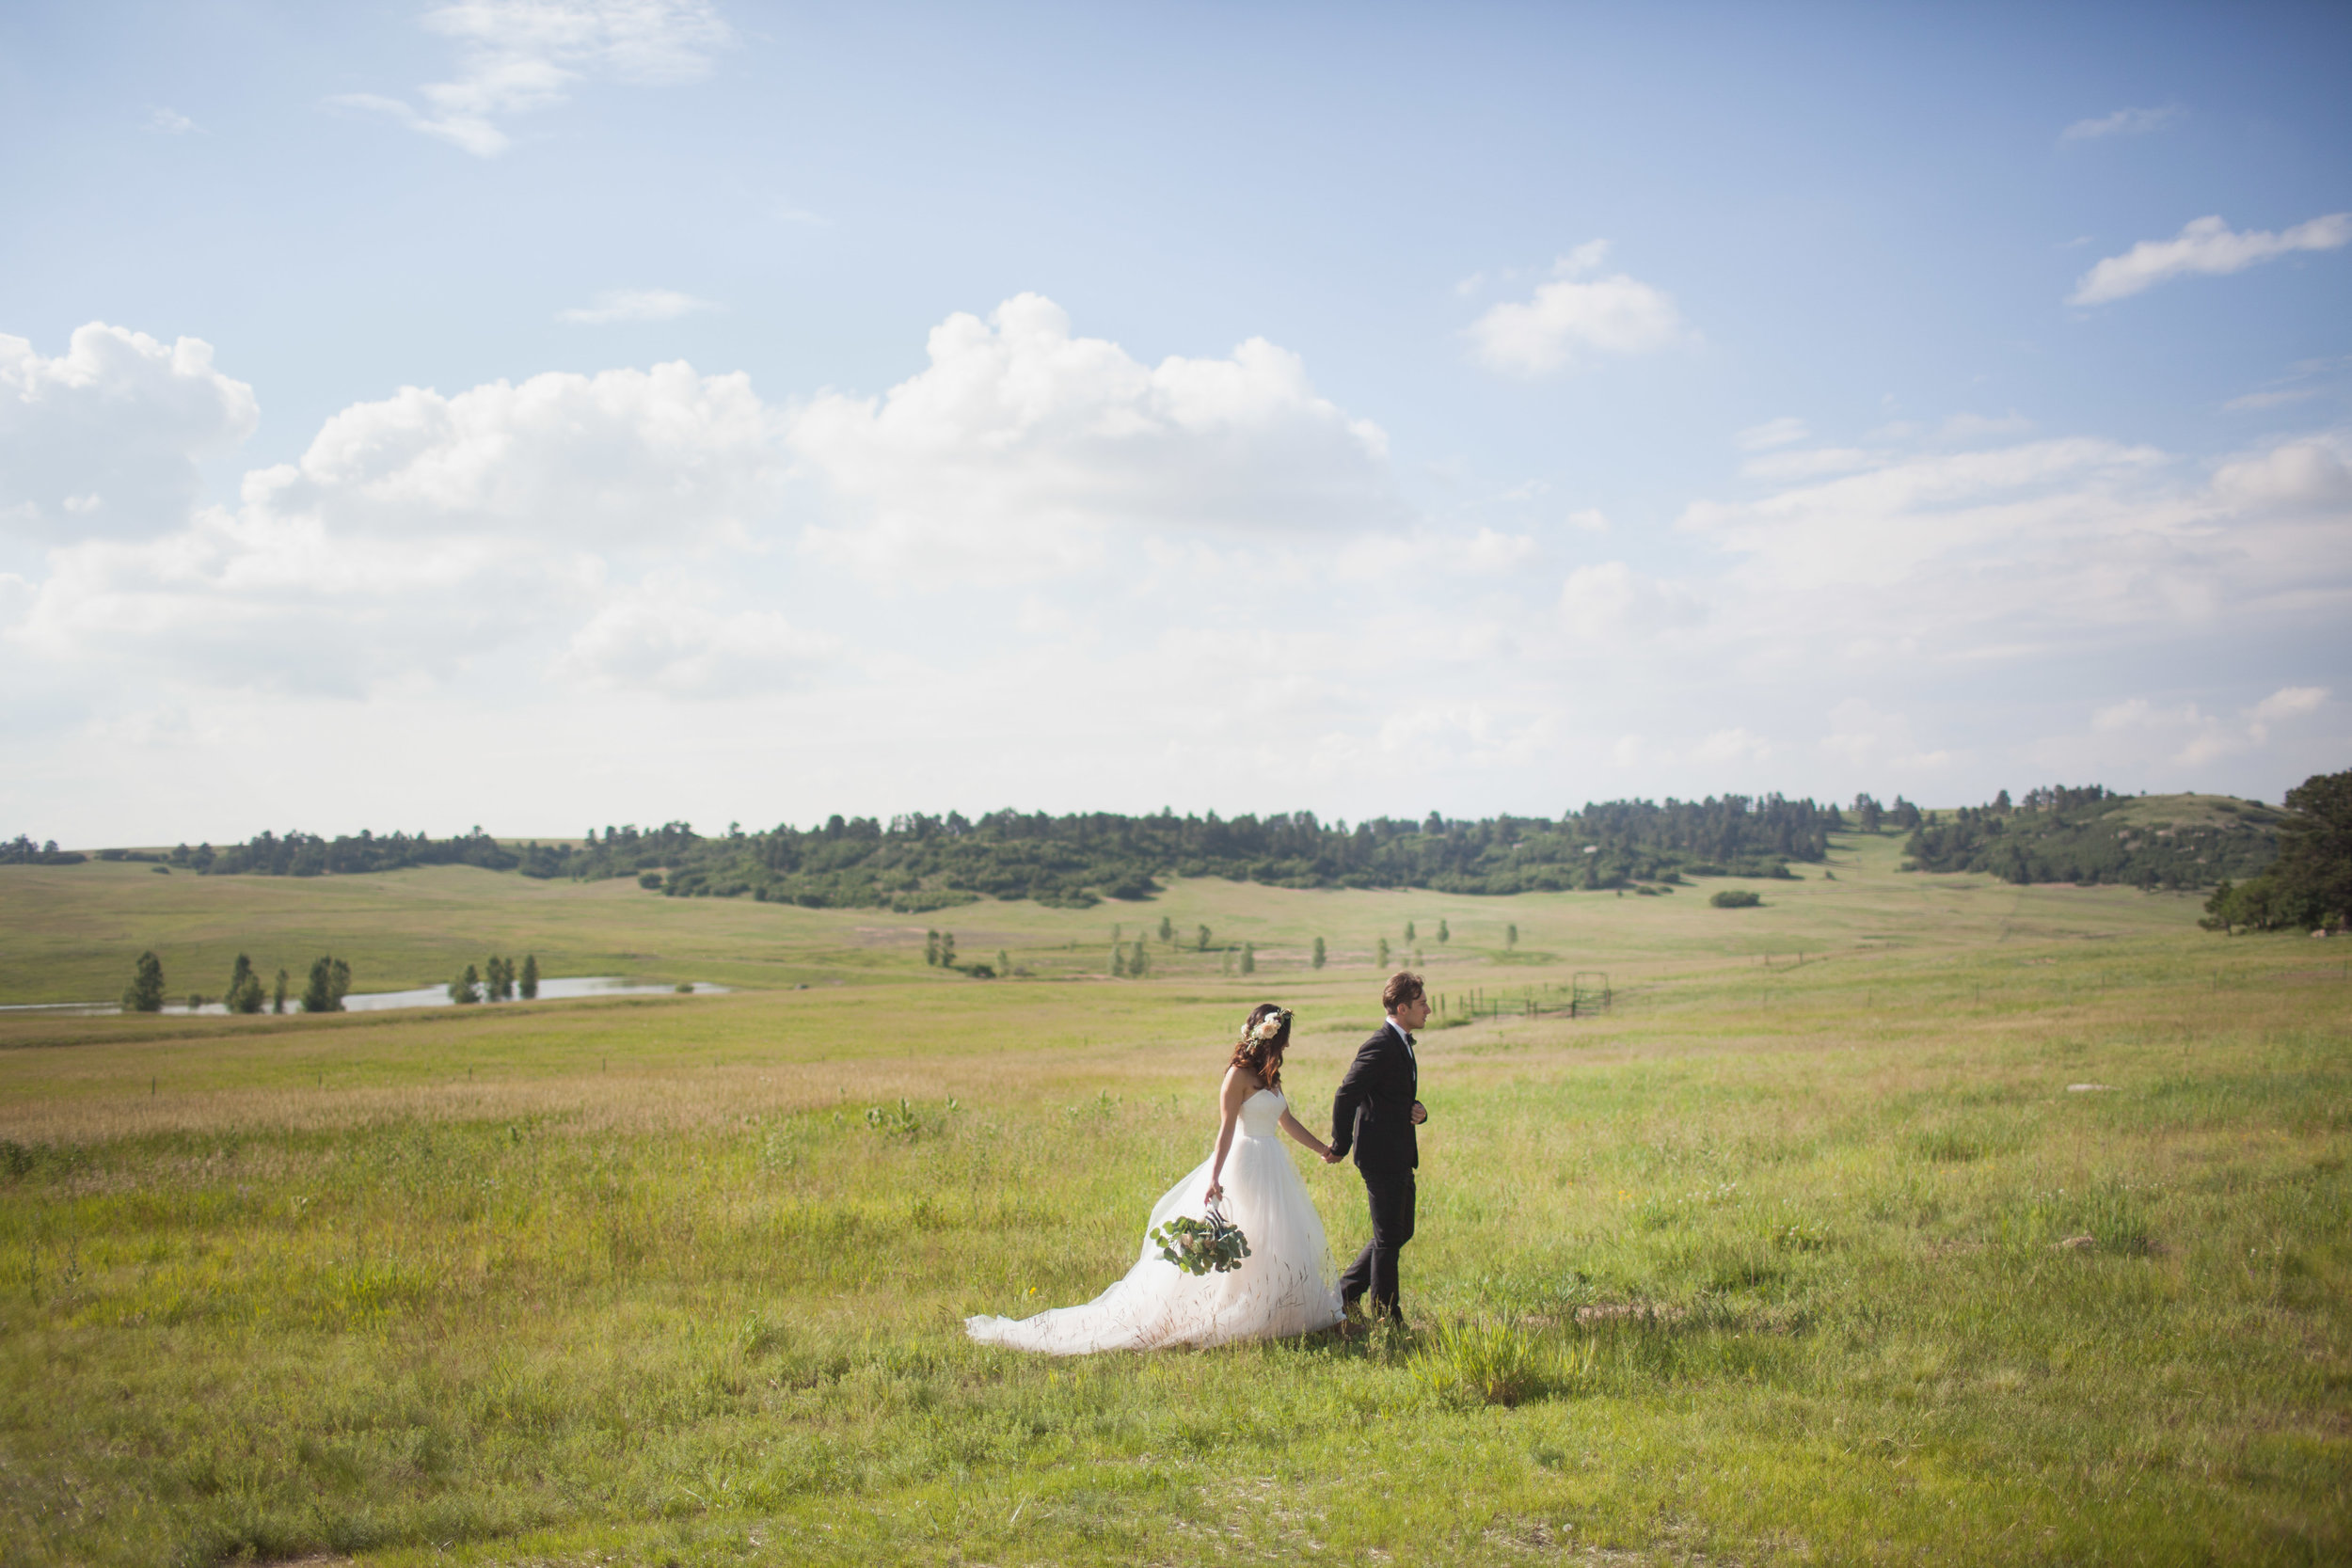 flying-horse-ranch-wedding-14.jpg